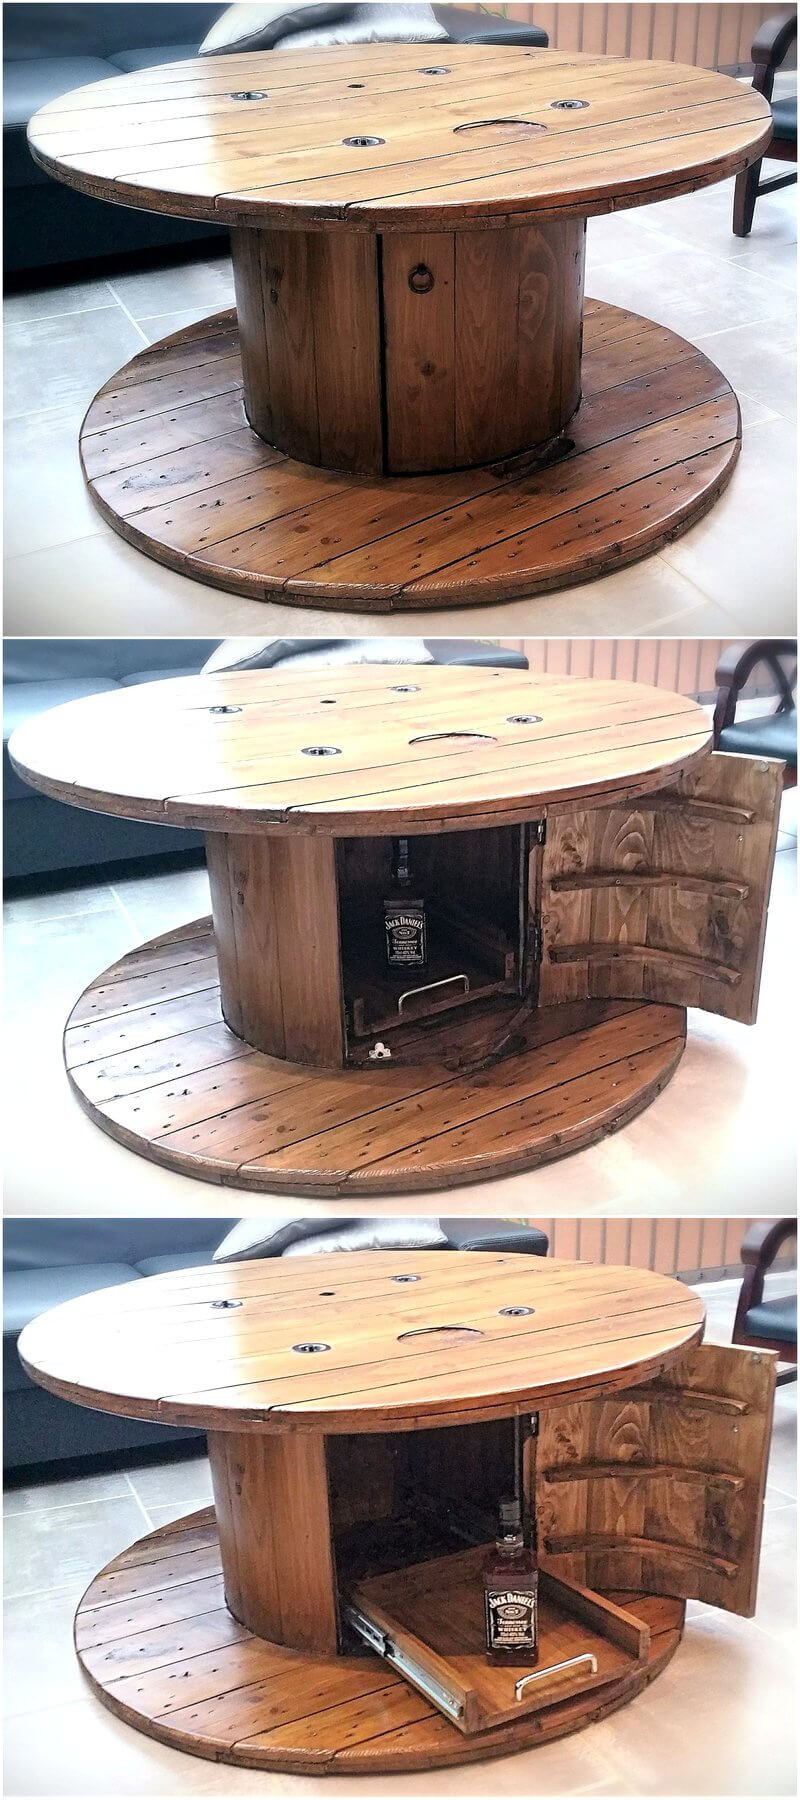 Diy motive ideas for wood pallets repurposing wood for Wooden cable reel ideas